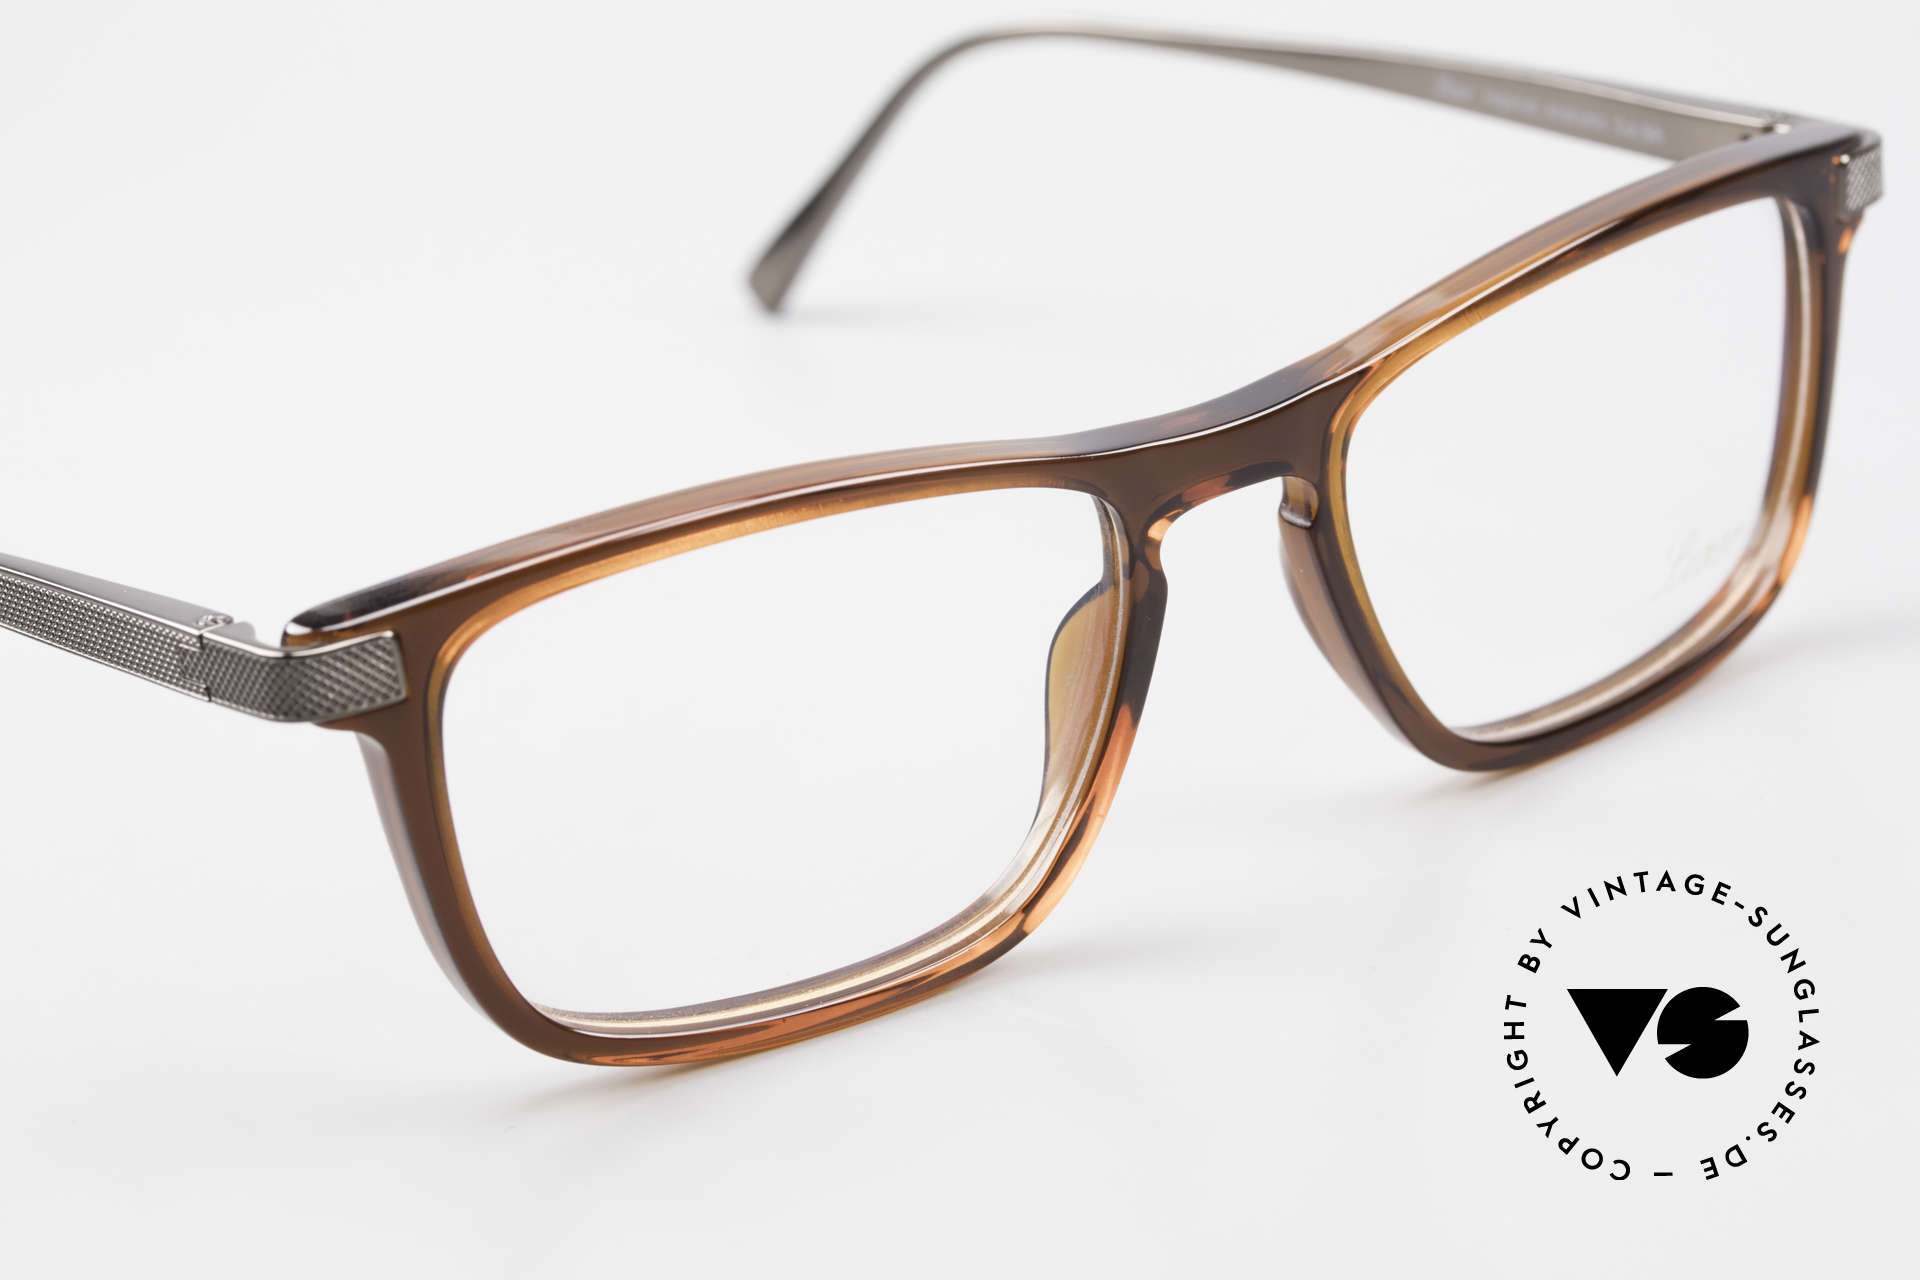 Lunor Imperial Anatomic Titanium Frame 2012 Unisex, frame (size 52/18) can be glazed with lenses of any kind, Made for Men and Women